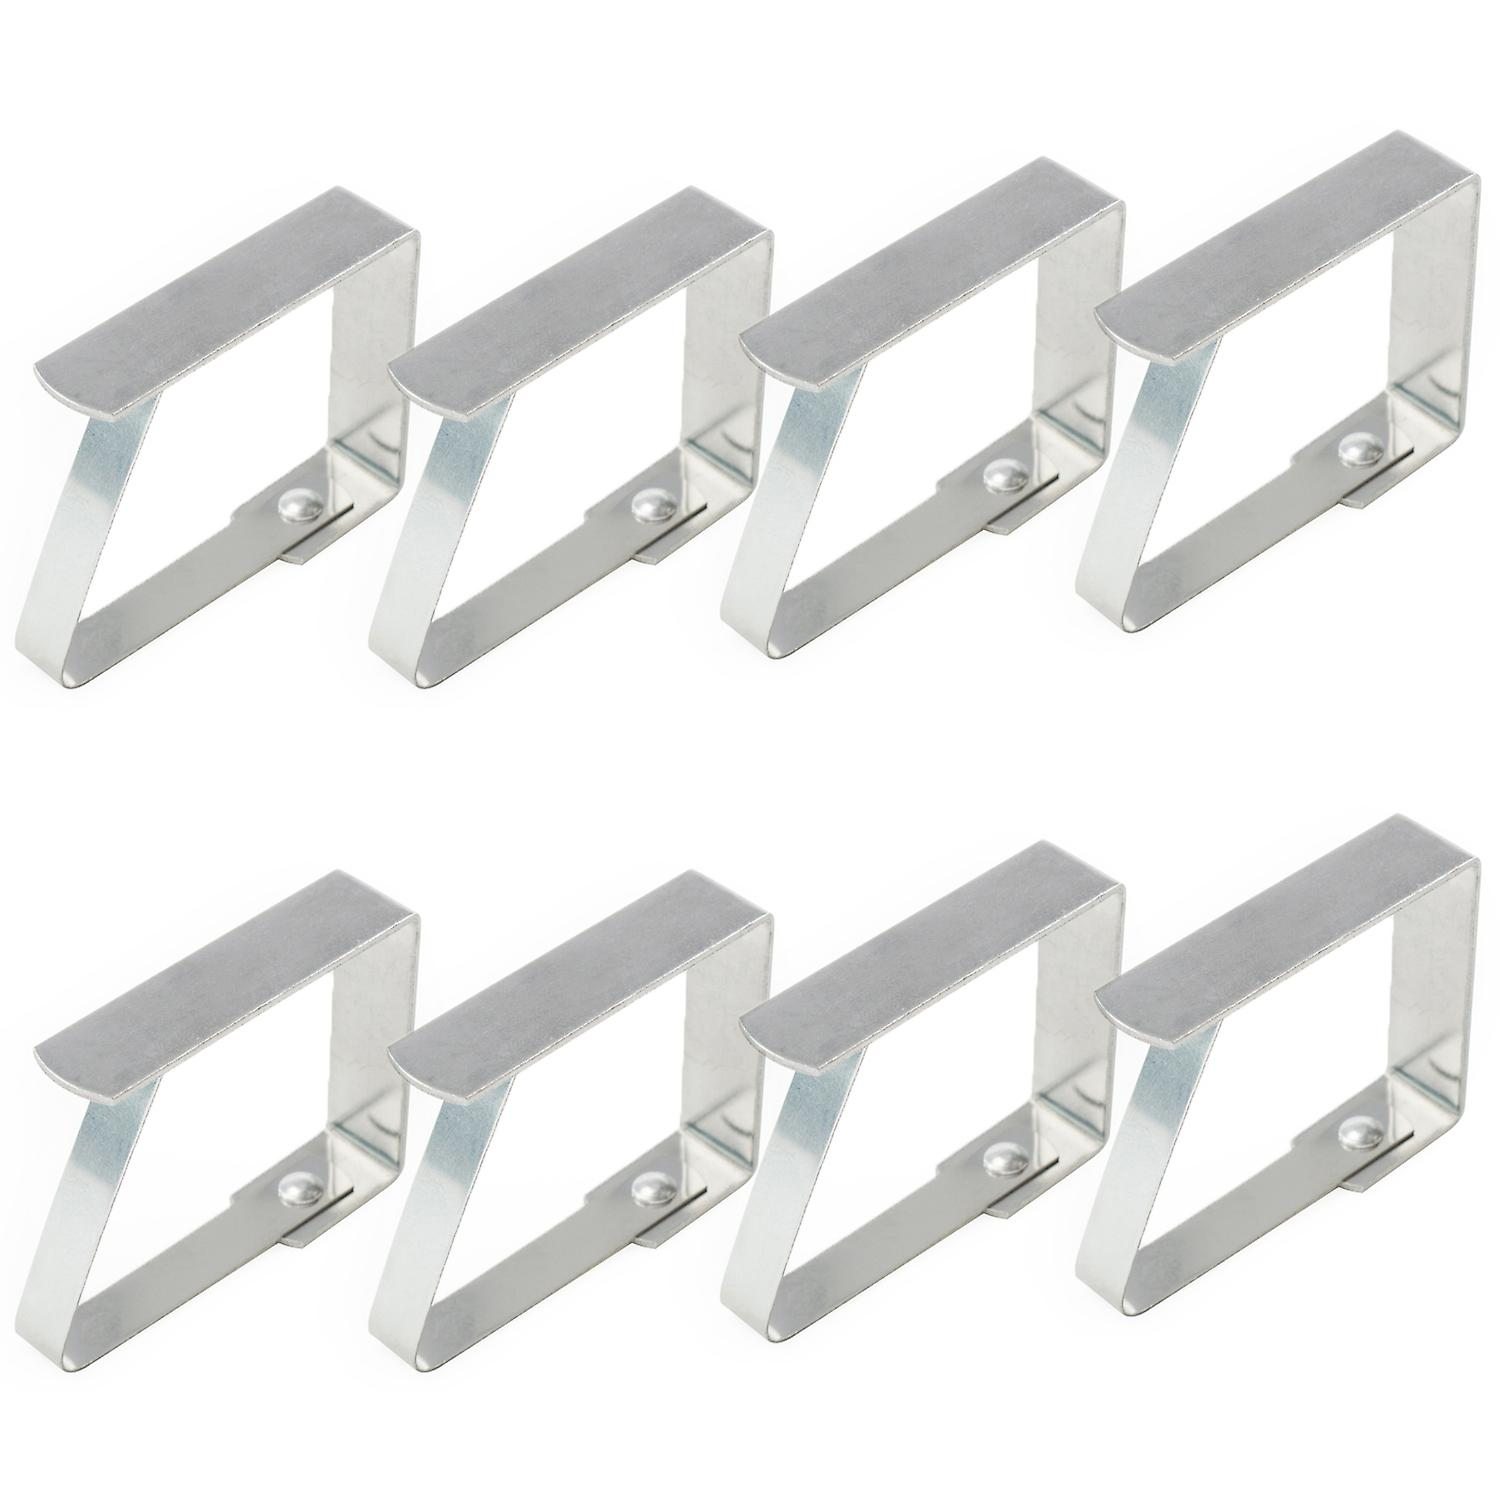 TRIXES 8PC Pack of Stainless Steel Table Cloth Clips Home and Outdoor Garden